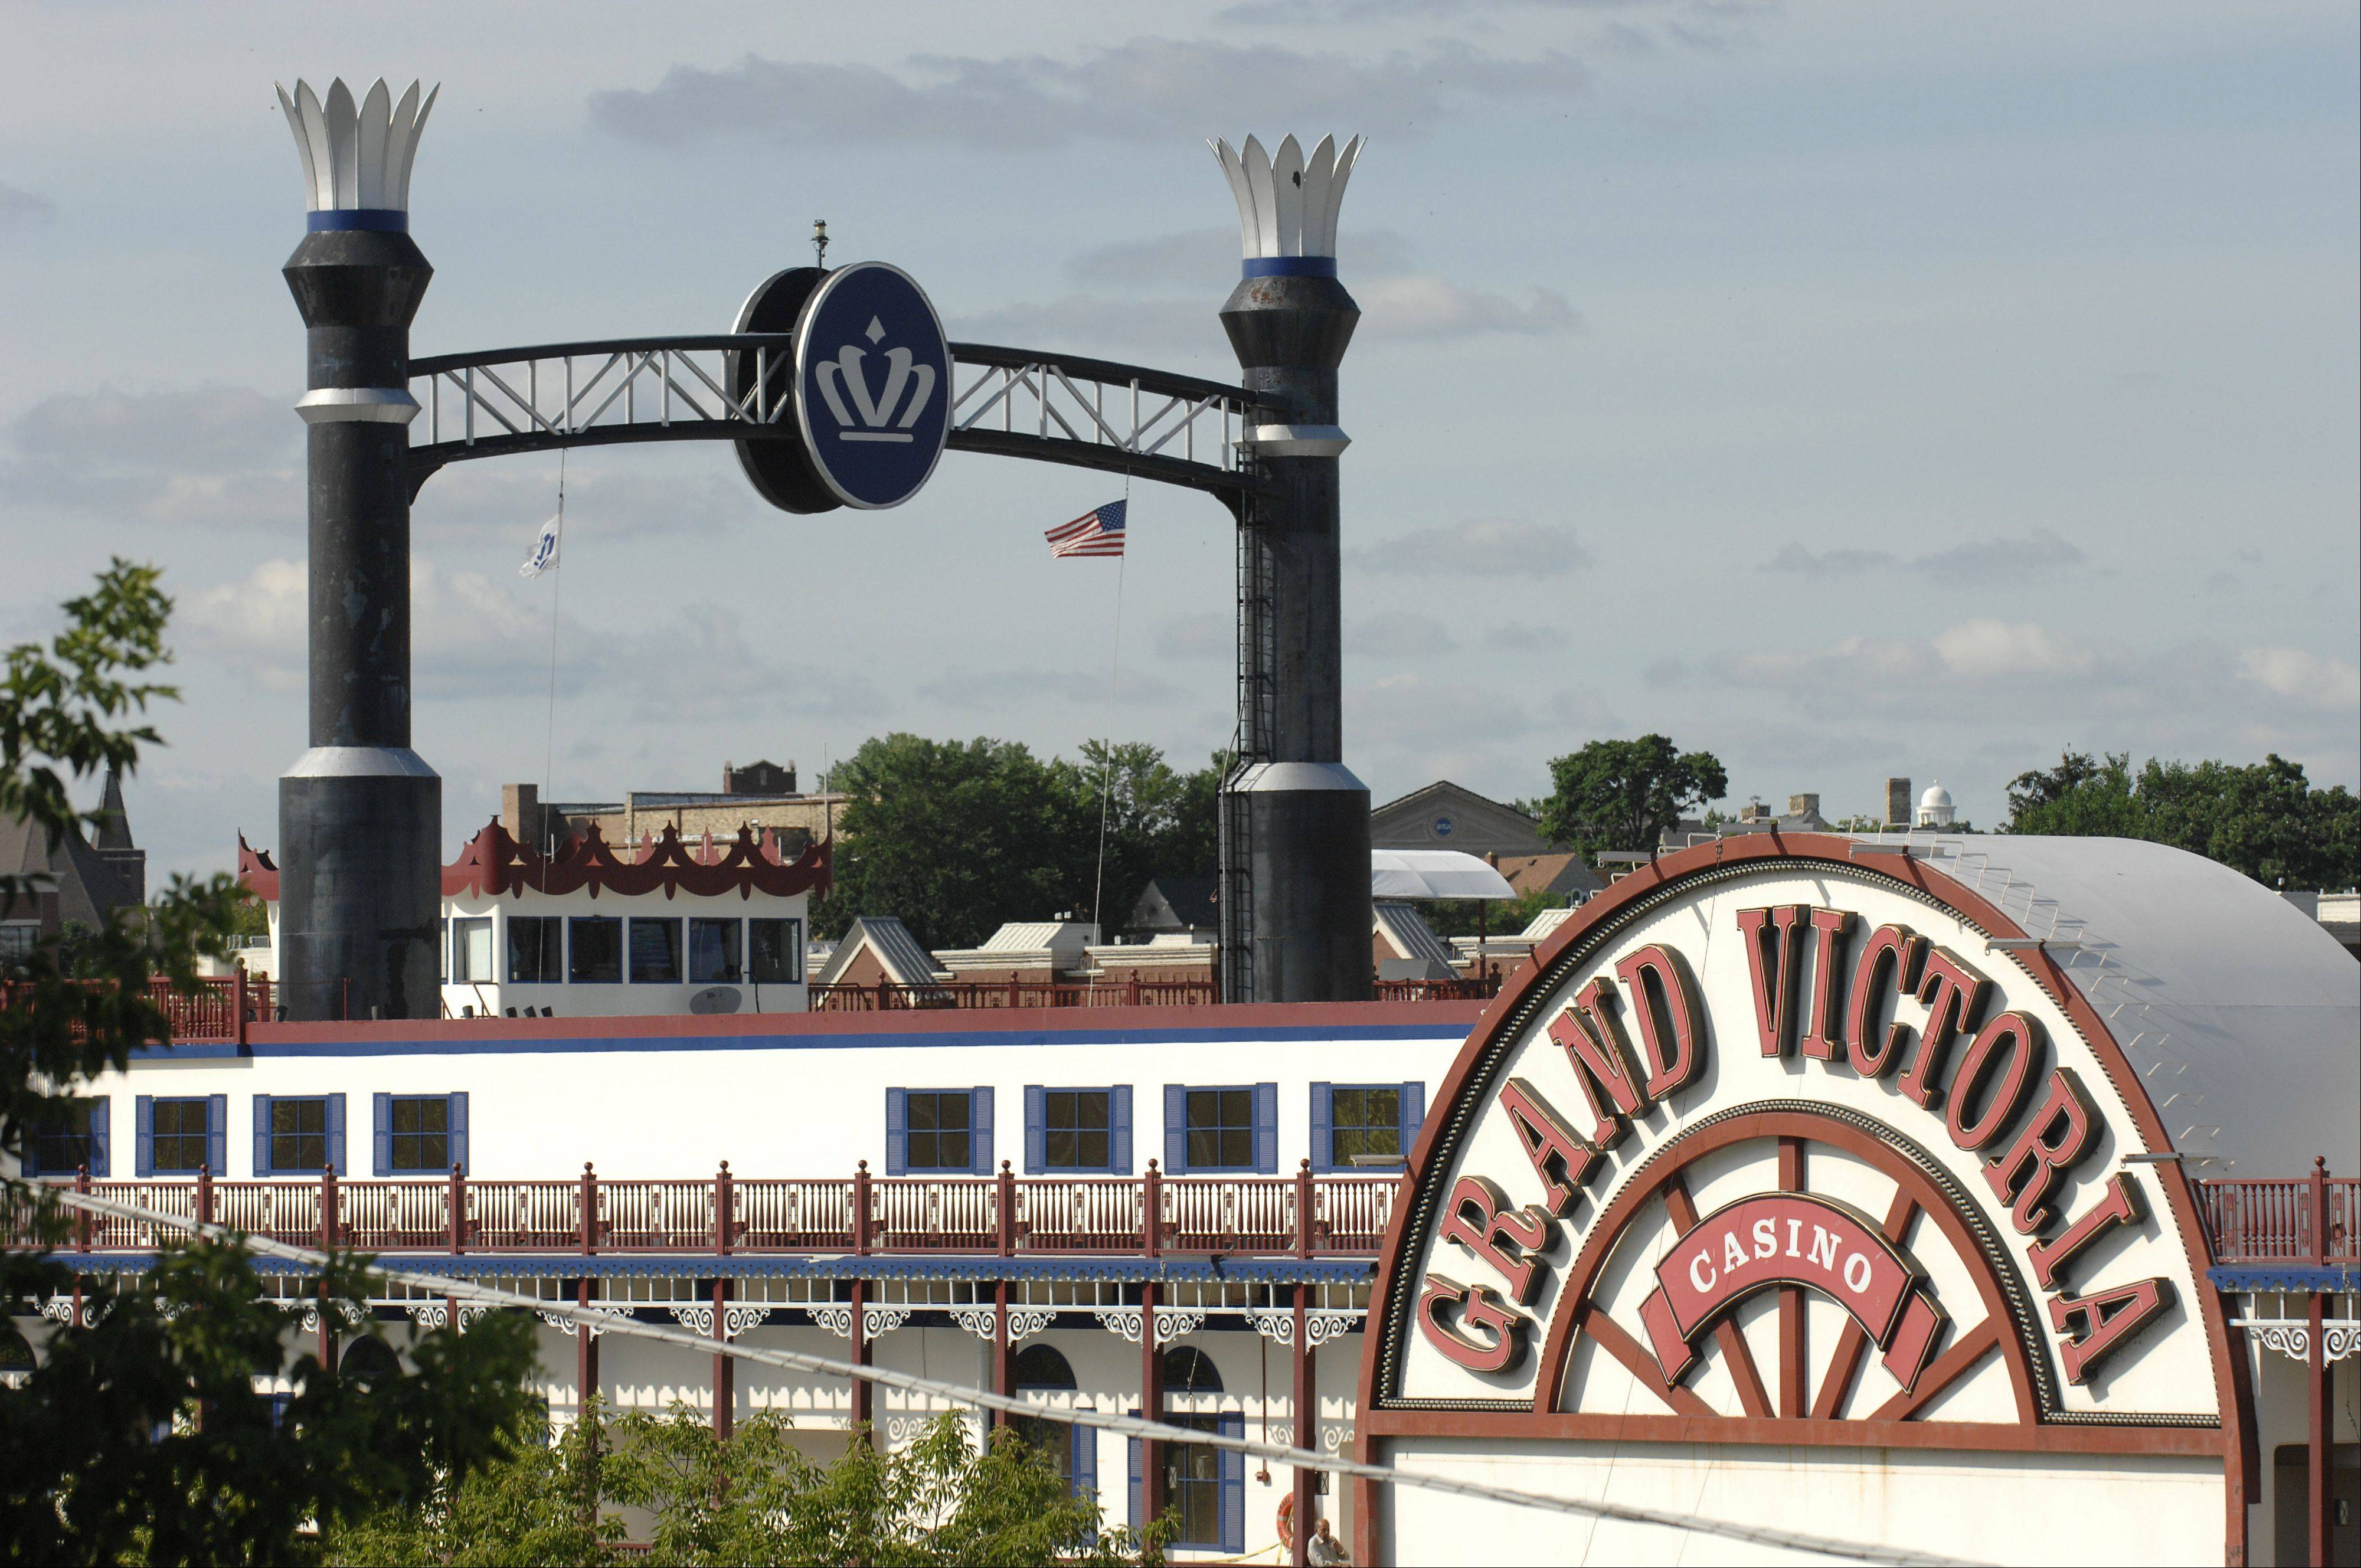 The Grand Victoria Casino in Elgin on the Fox River. Because profits at the casino are down, Kane County is getting less money for its riverboat fund. In turn, the county board is limiting the size of grants it makes, and cutting local governments off the list.